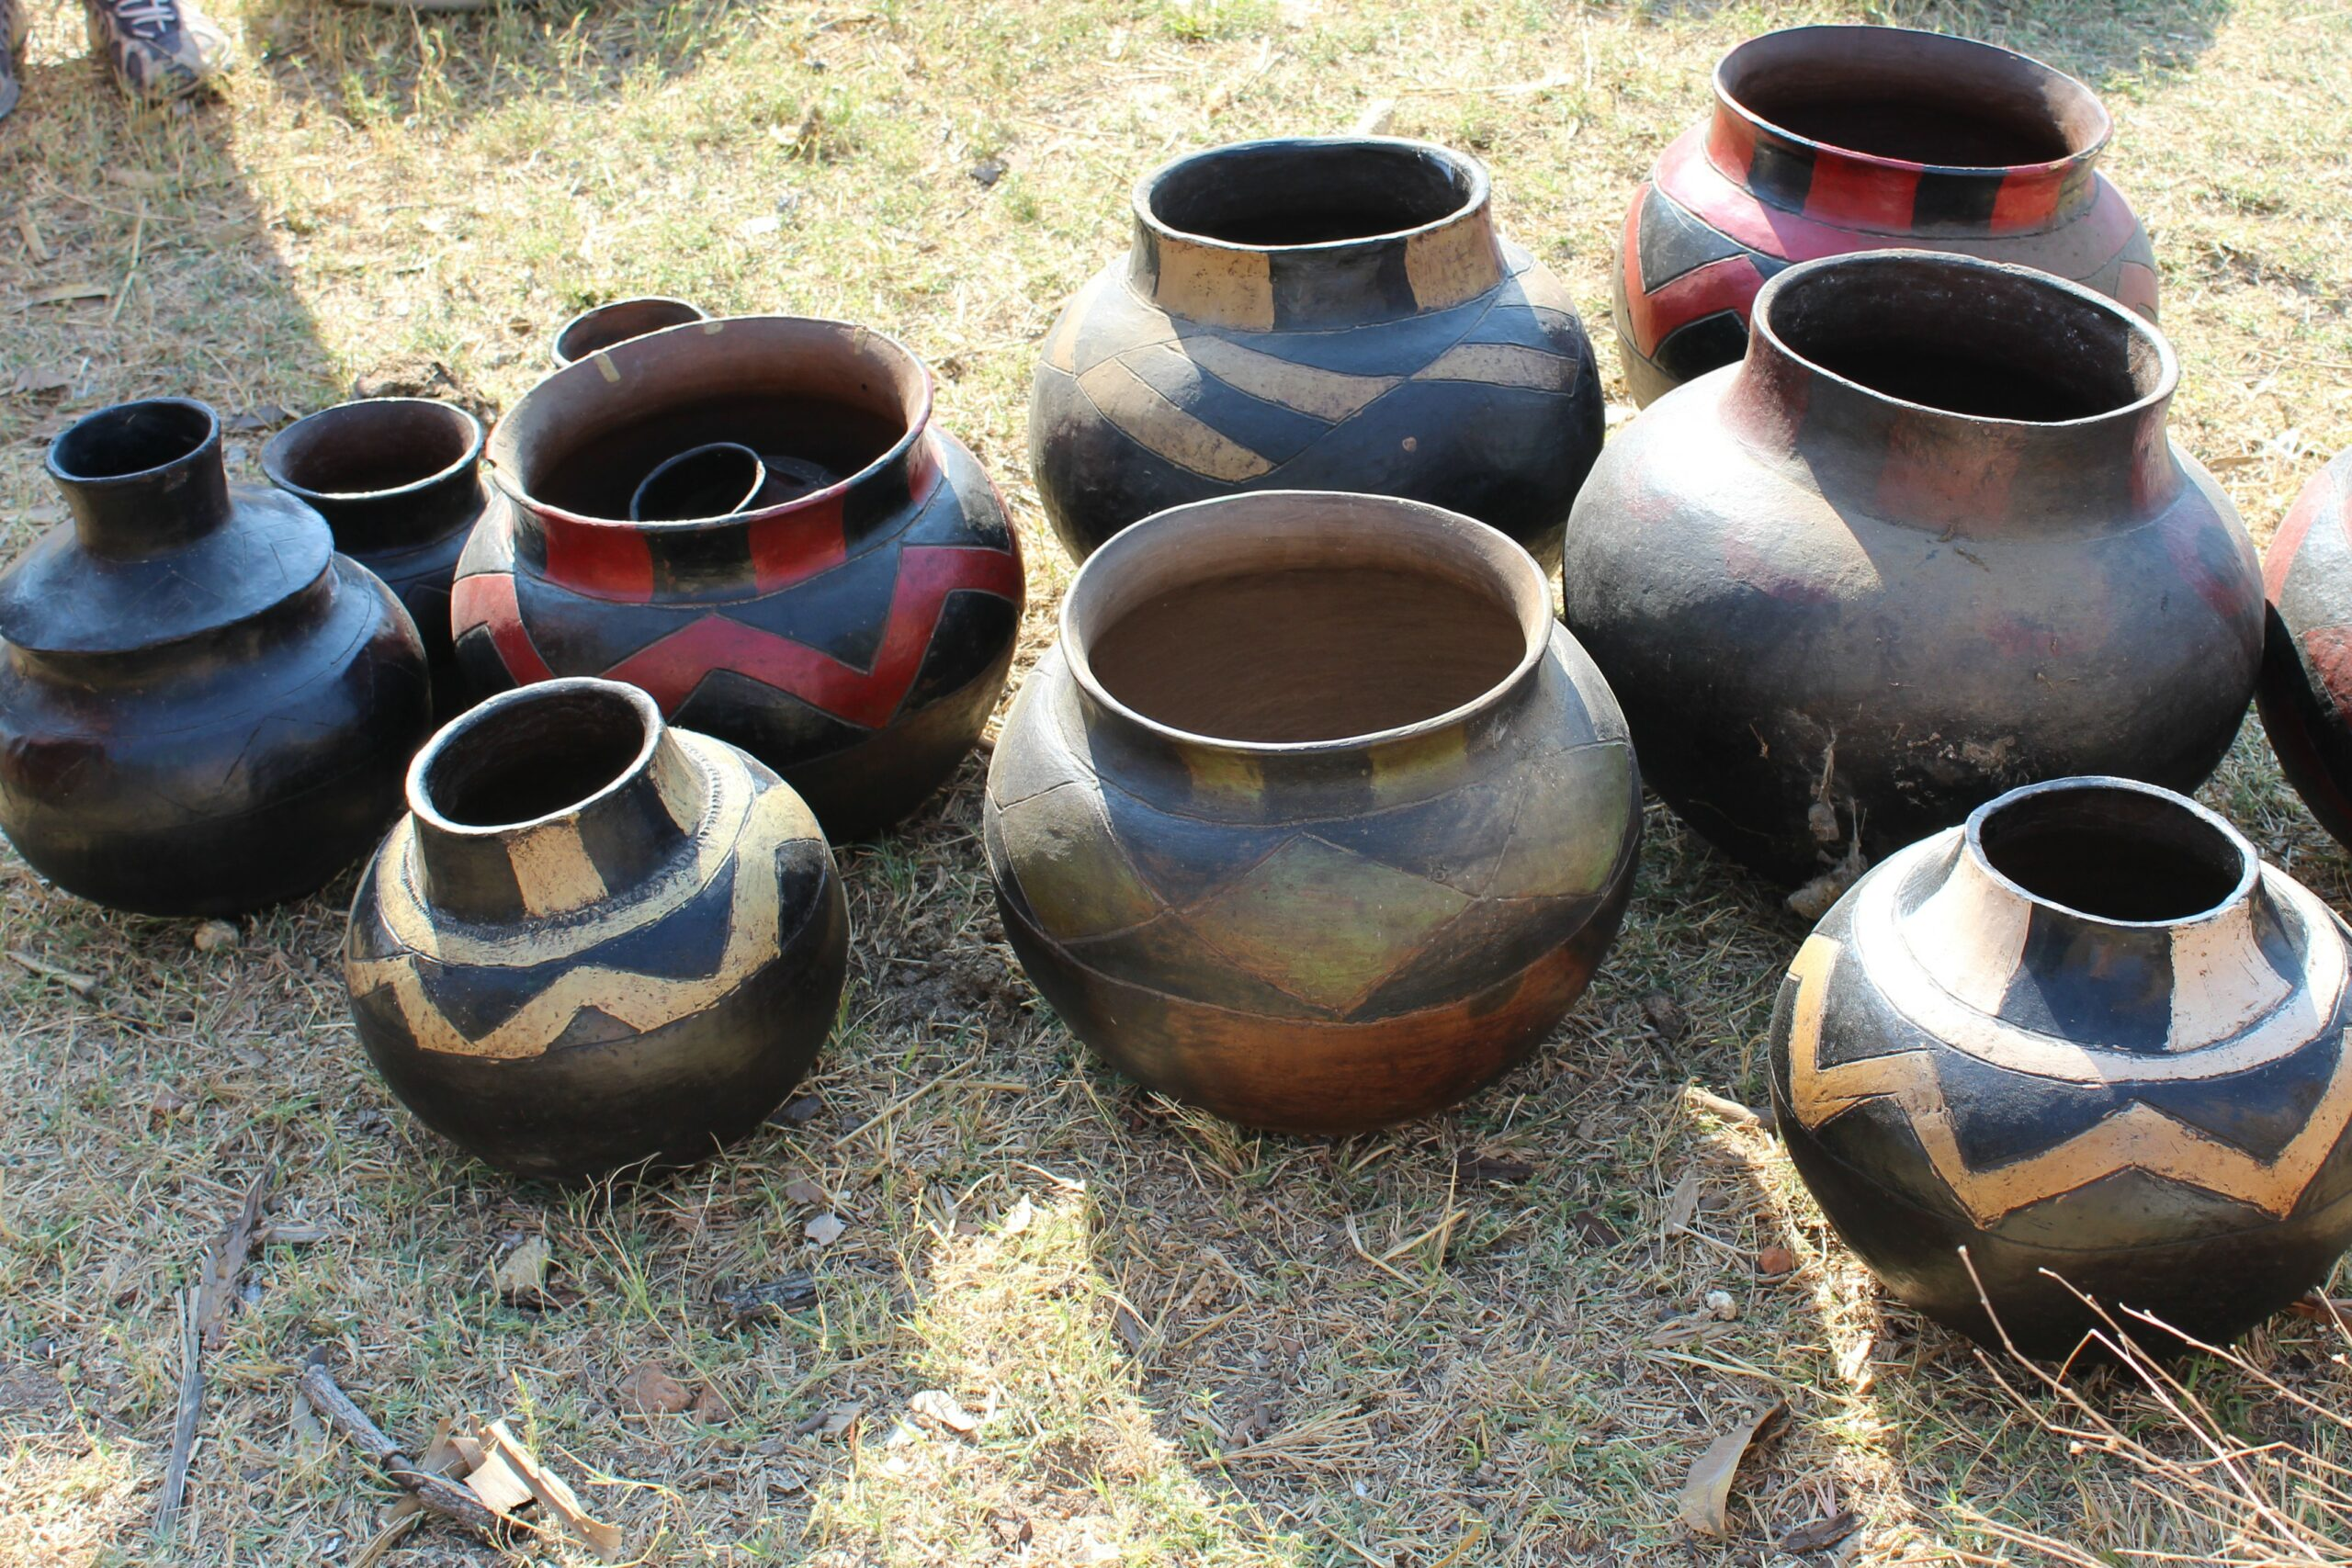 Collection of tradtional Shona pottery